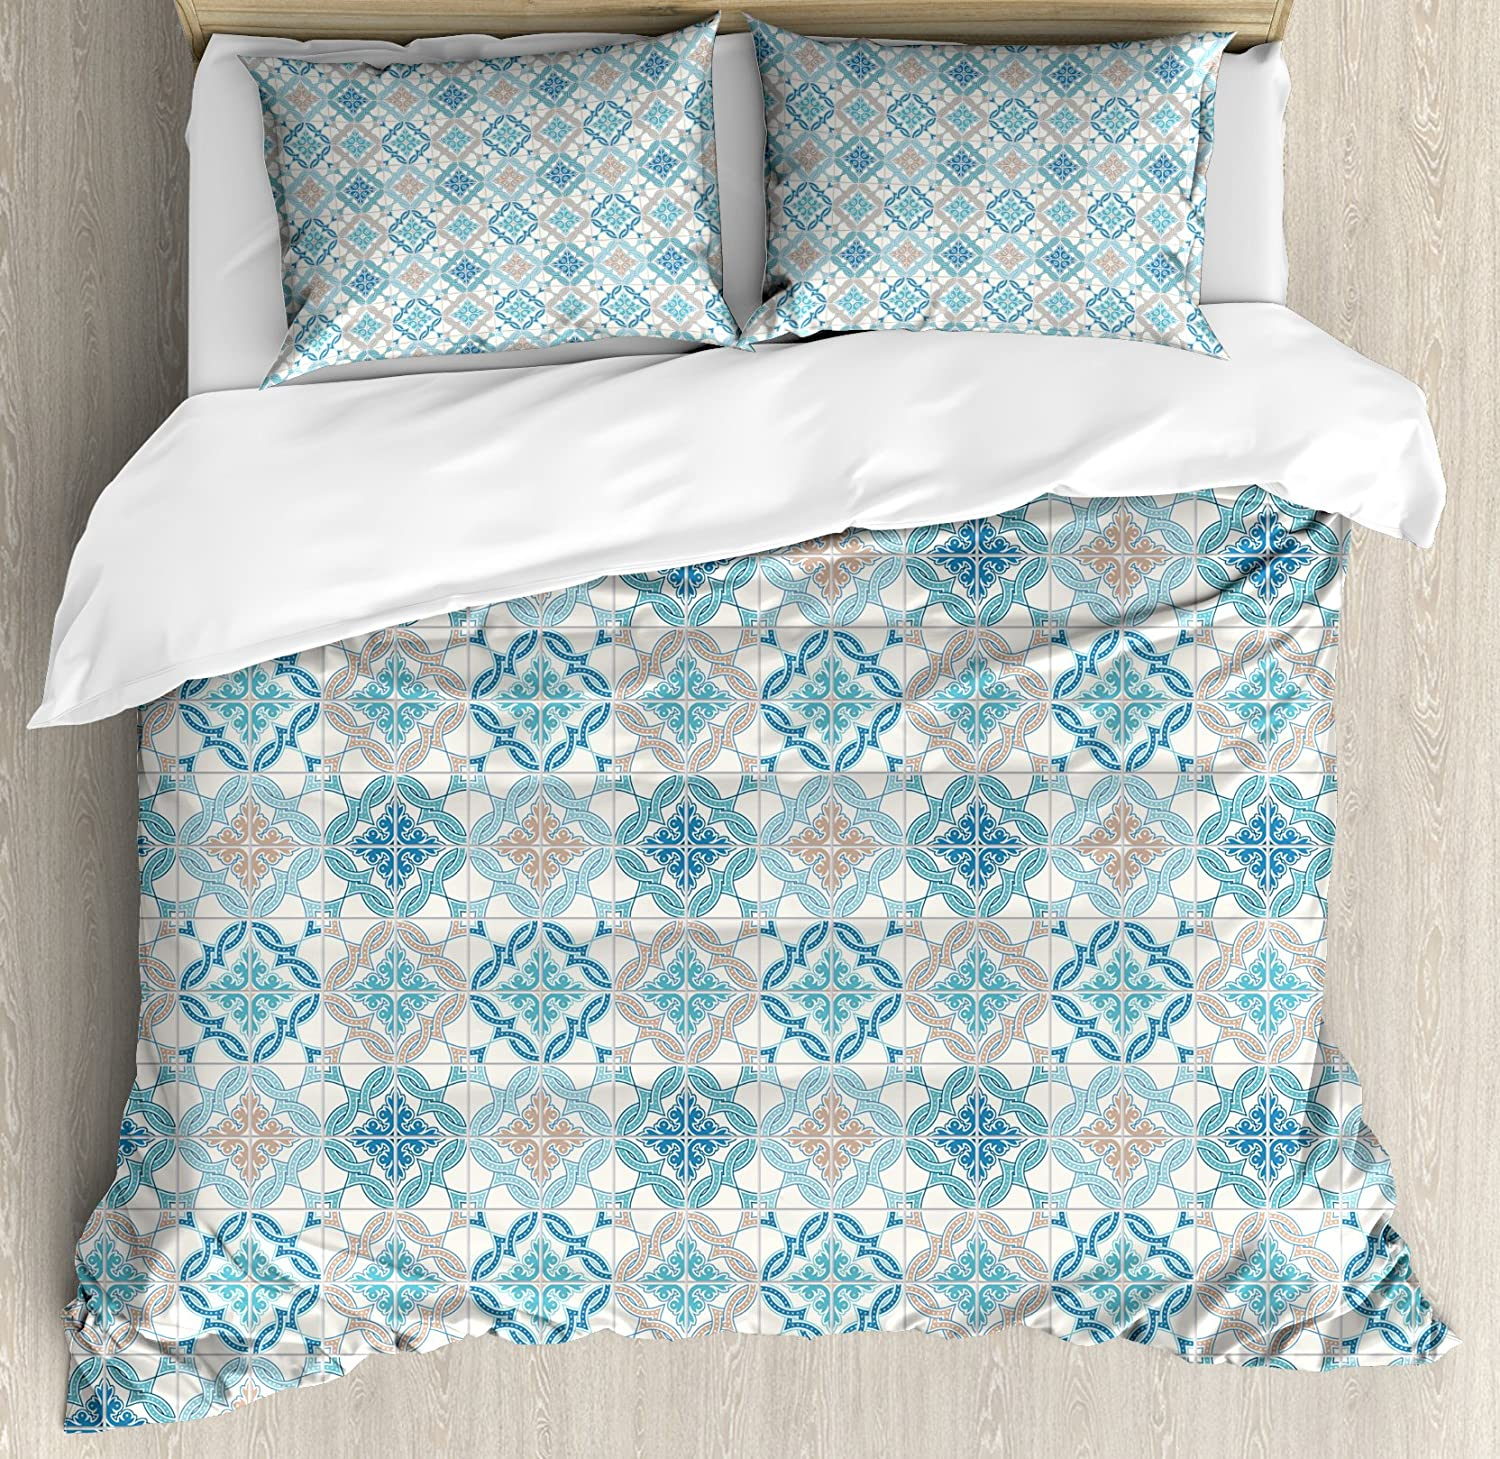 Ambesonne Quatrefoil Duvet Cover Set Tangled Modern Lisbon Pattern Based On Traditional Oriental Tiles Decorative 3 Piece Bedding Set With 2 Pillow Shams Queen Size Blue Tan White Home Kitchen